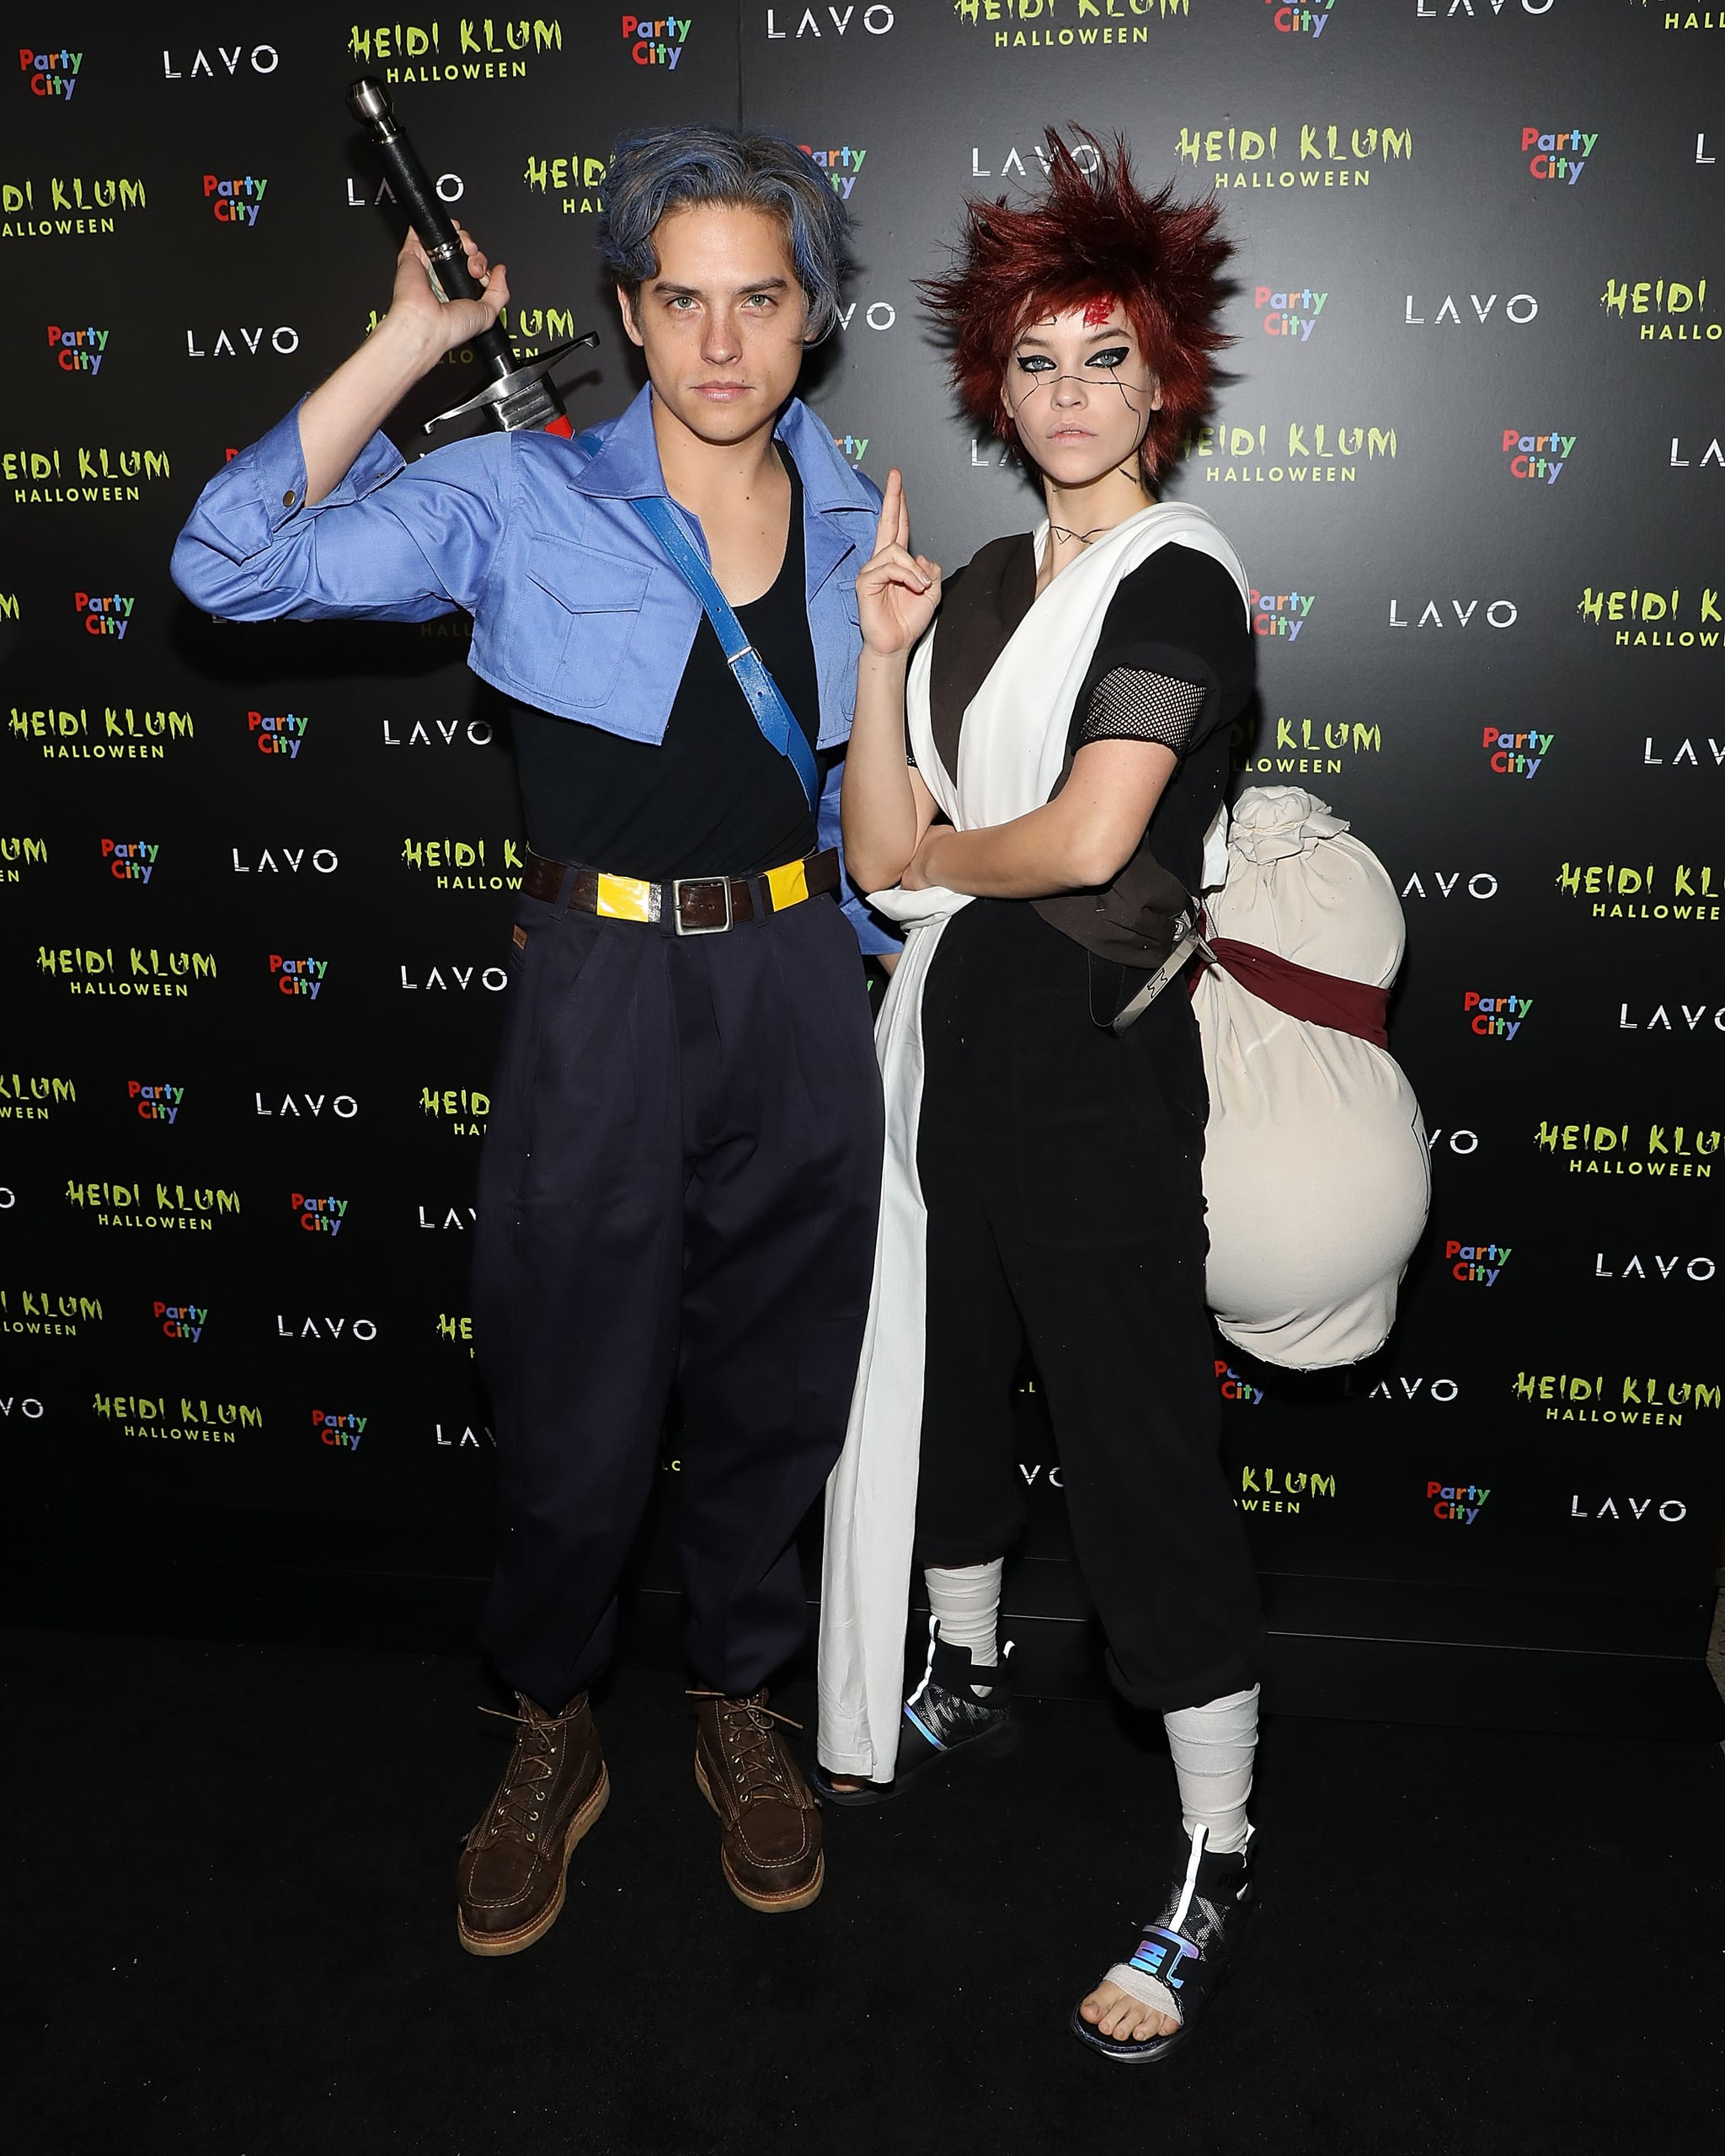 Barbara Palvin Halloween Costume 2020 Dylan Sprouse and Barbara Palvin as Future Trunks and Gaara